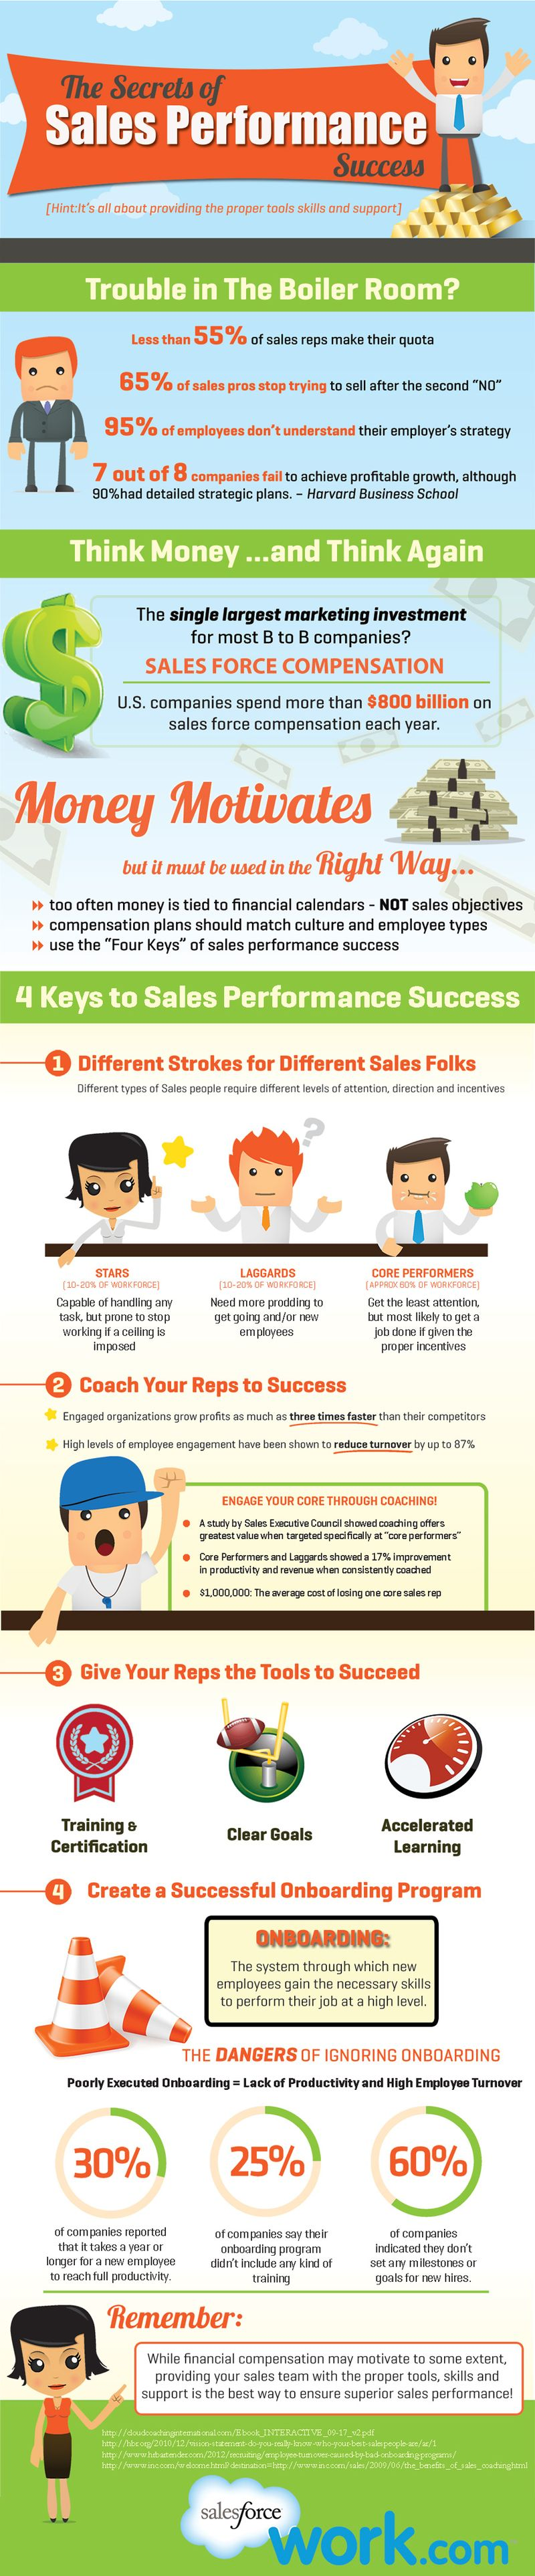 Sales Performance Tips-Infographic